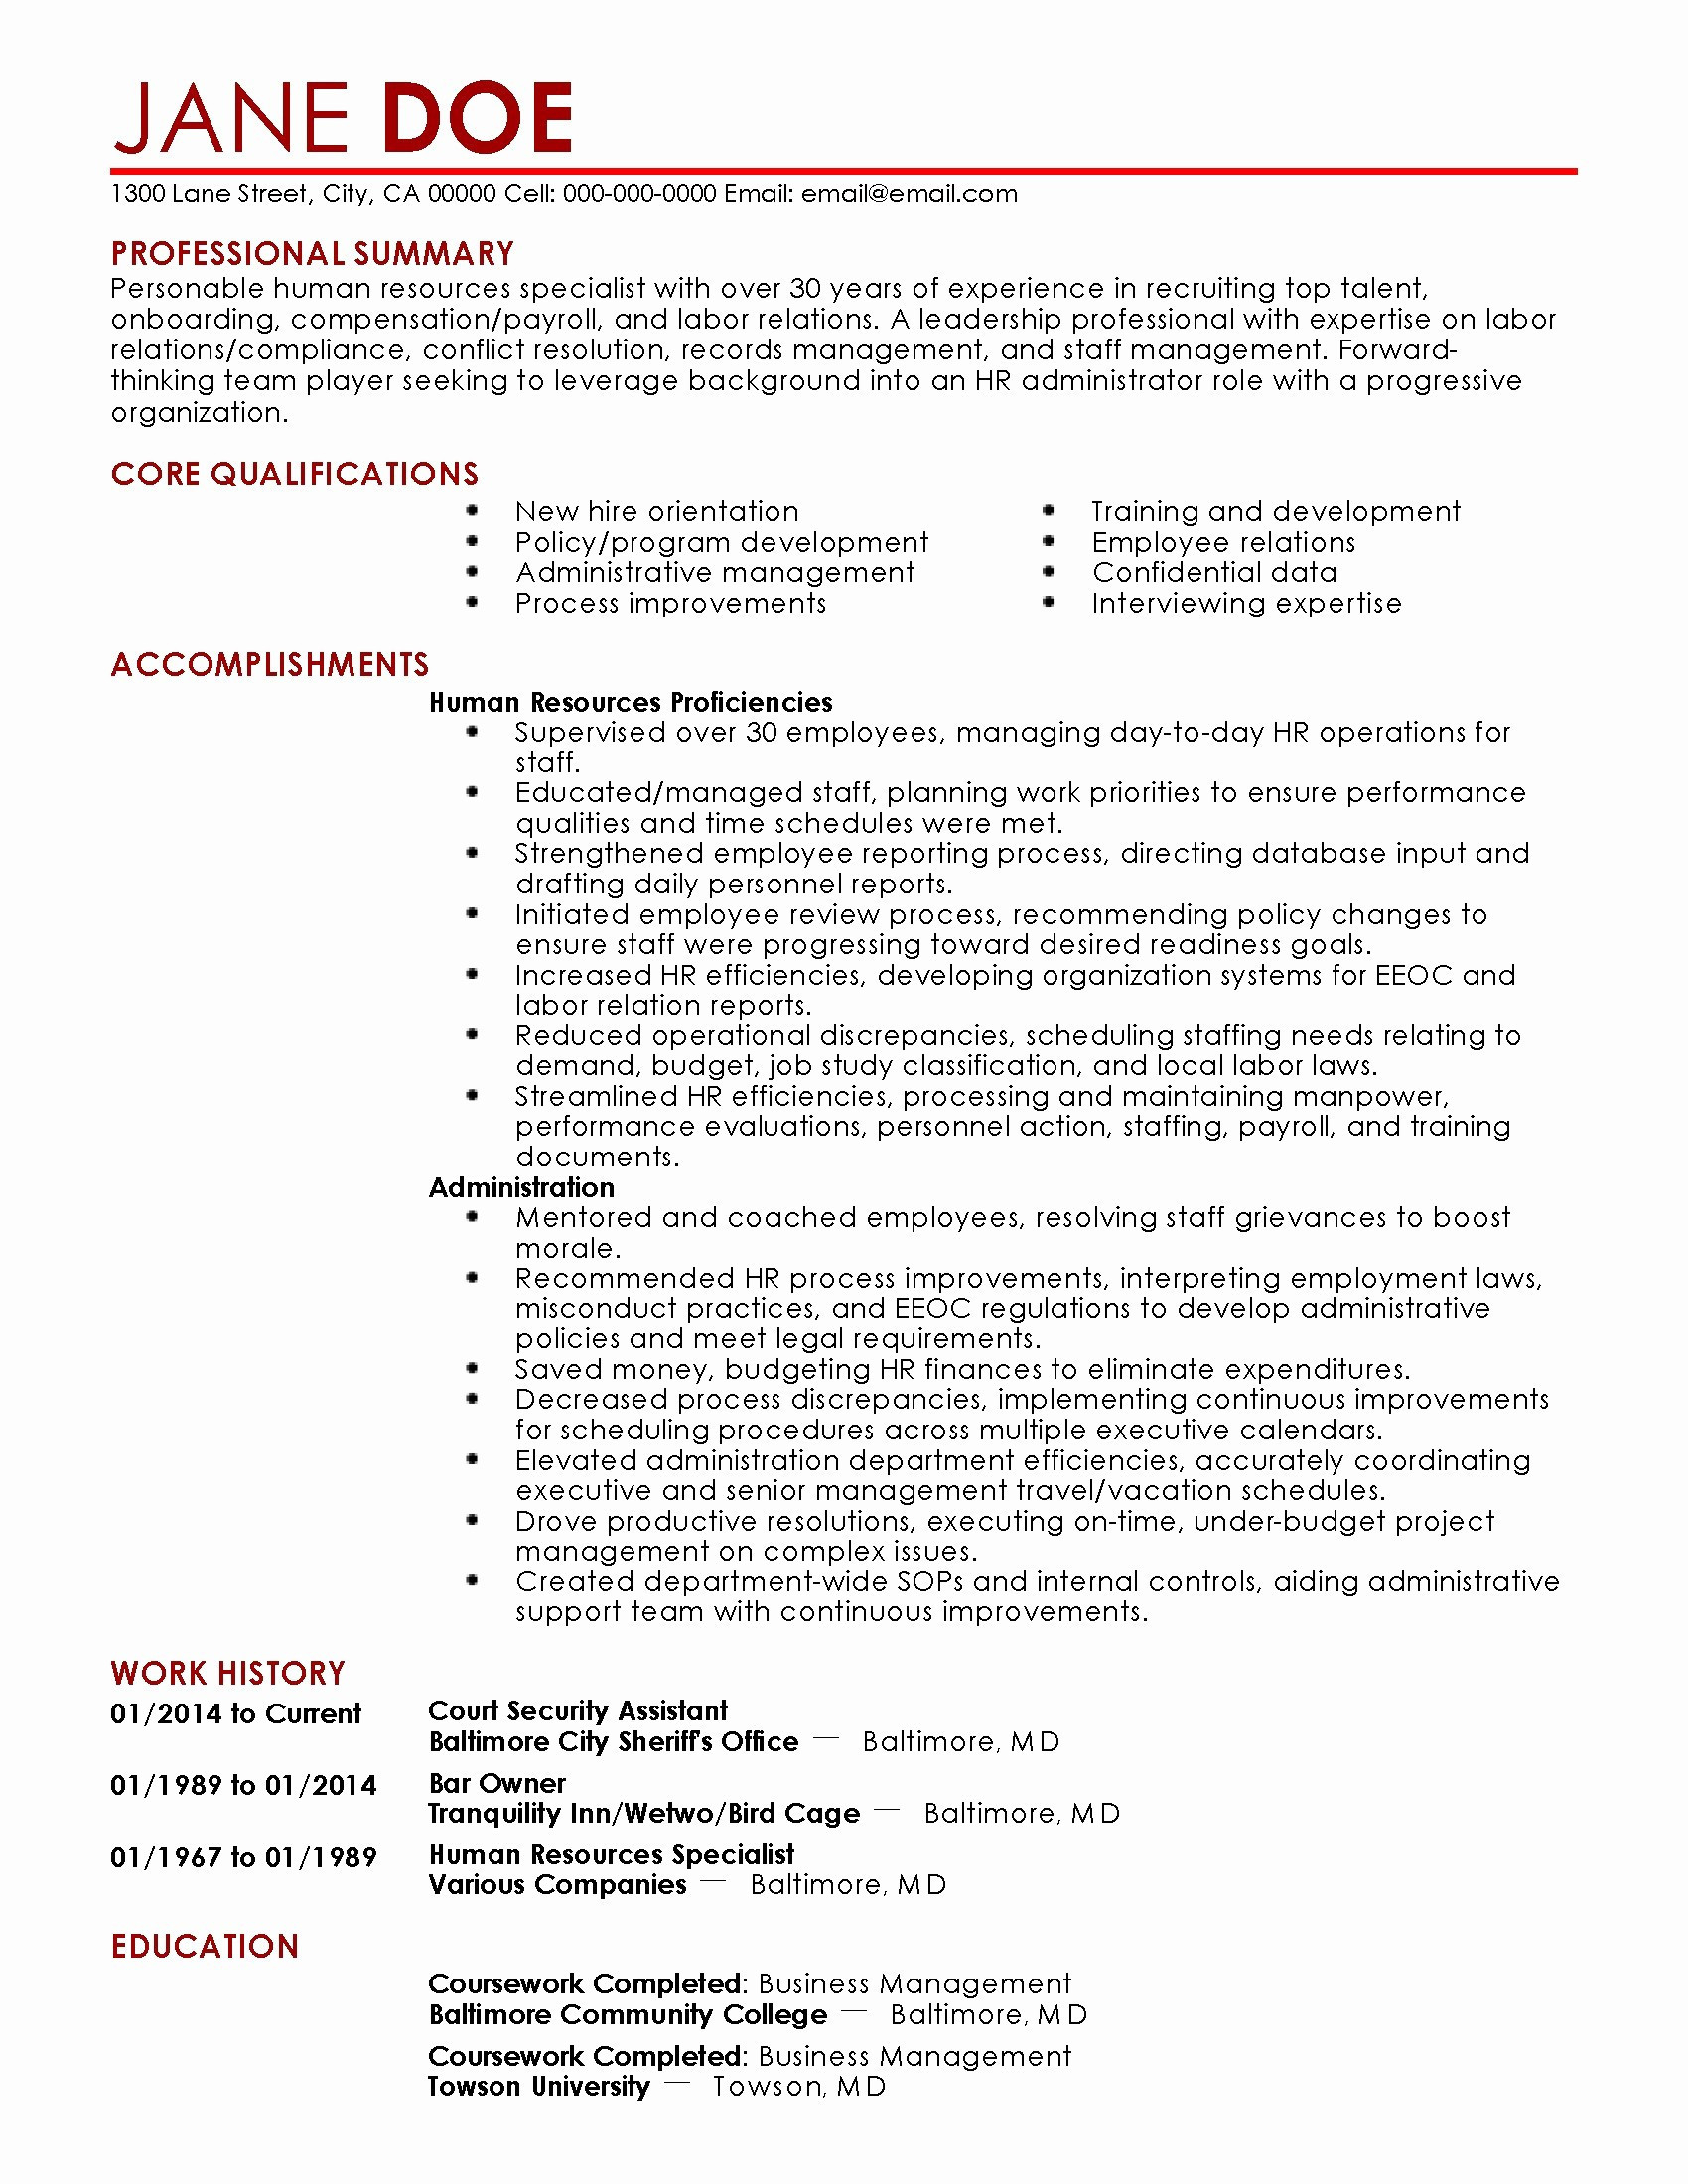 Office Clerk Job Description for Resume - top Rated Medical assistant Responsibilities Resume